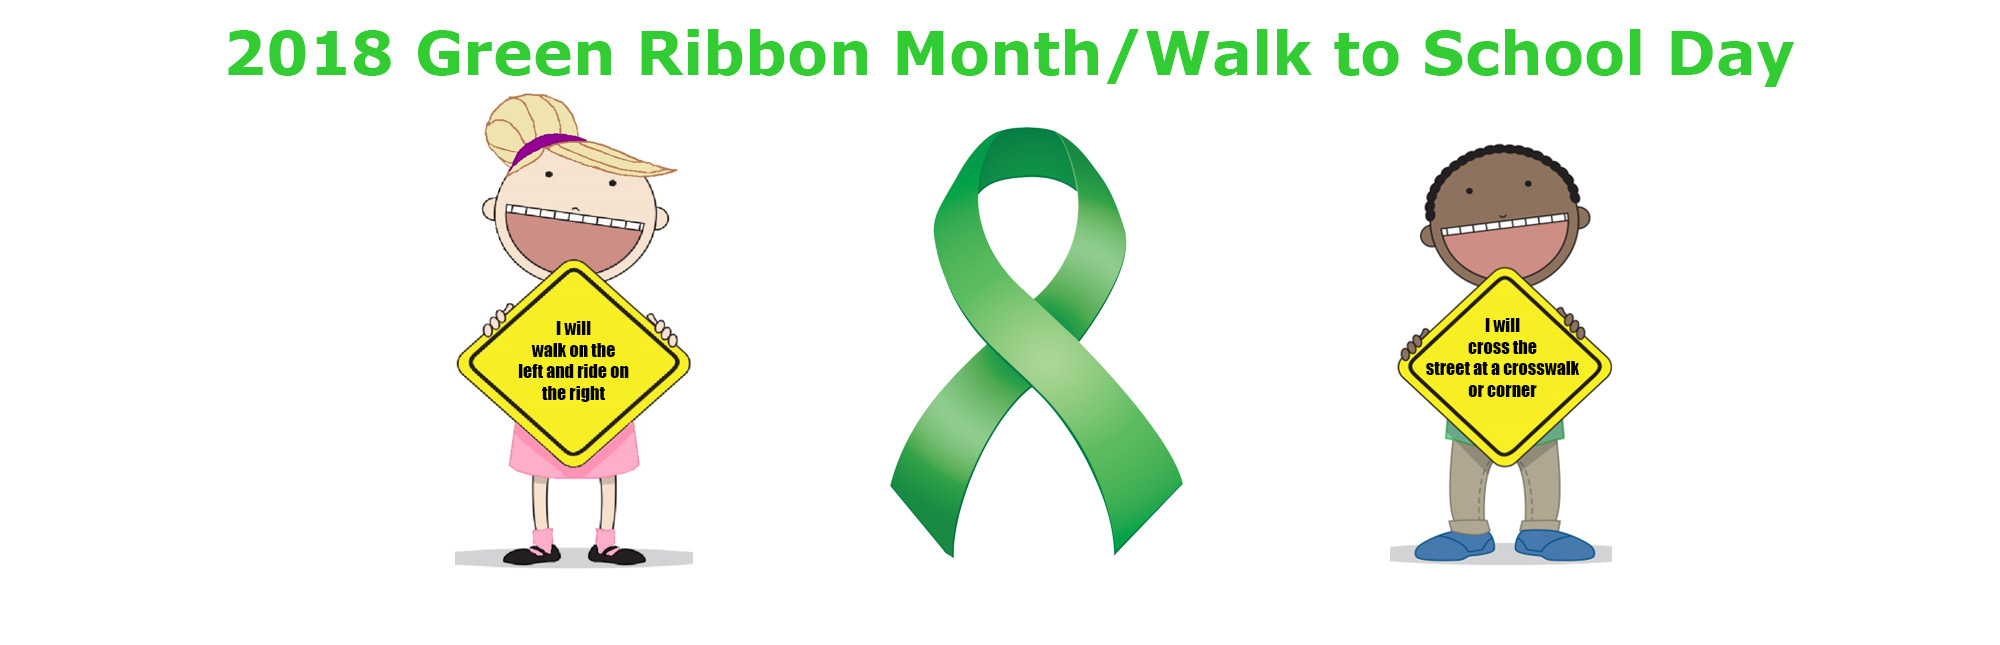 Green Ribbon Month